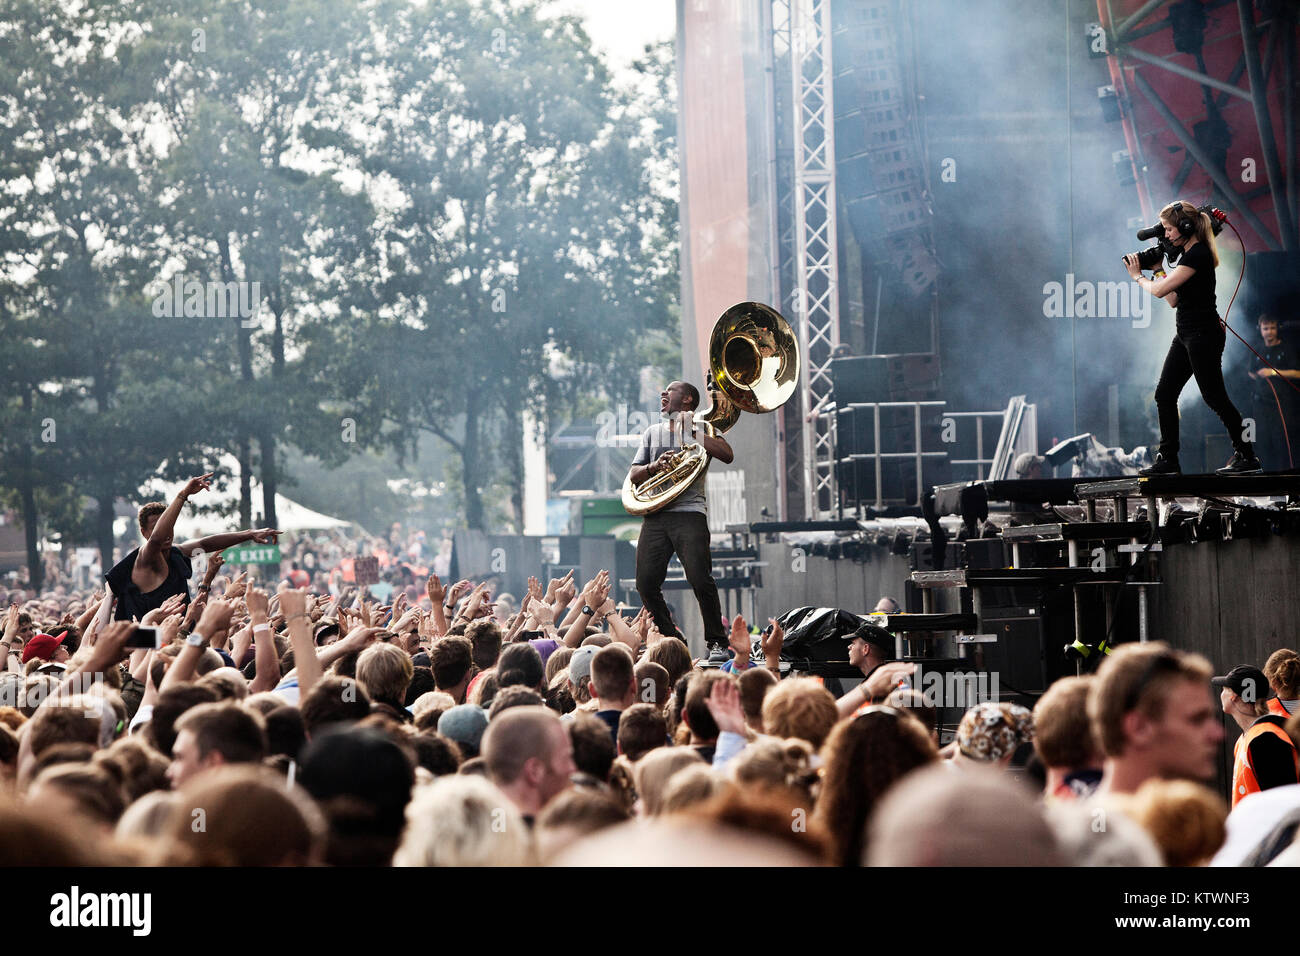 The American hip hop, rap and soul band The Roots performs a live concert at Roskilde Festival 2012. Here the musician Stock Photo